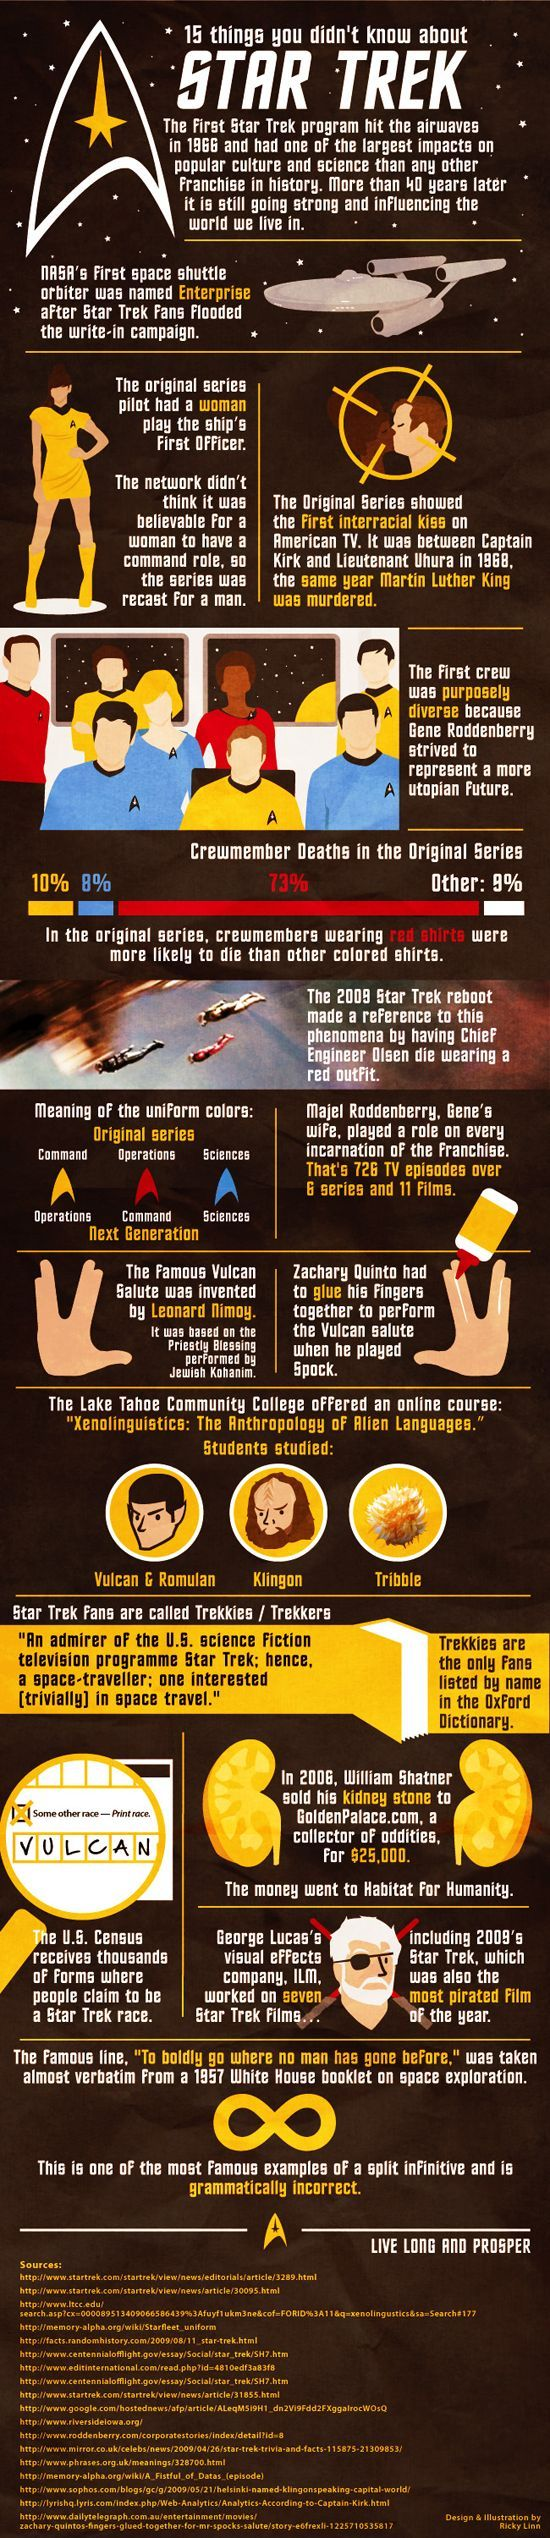 TV and Movies by the Numbers (21 pics)